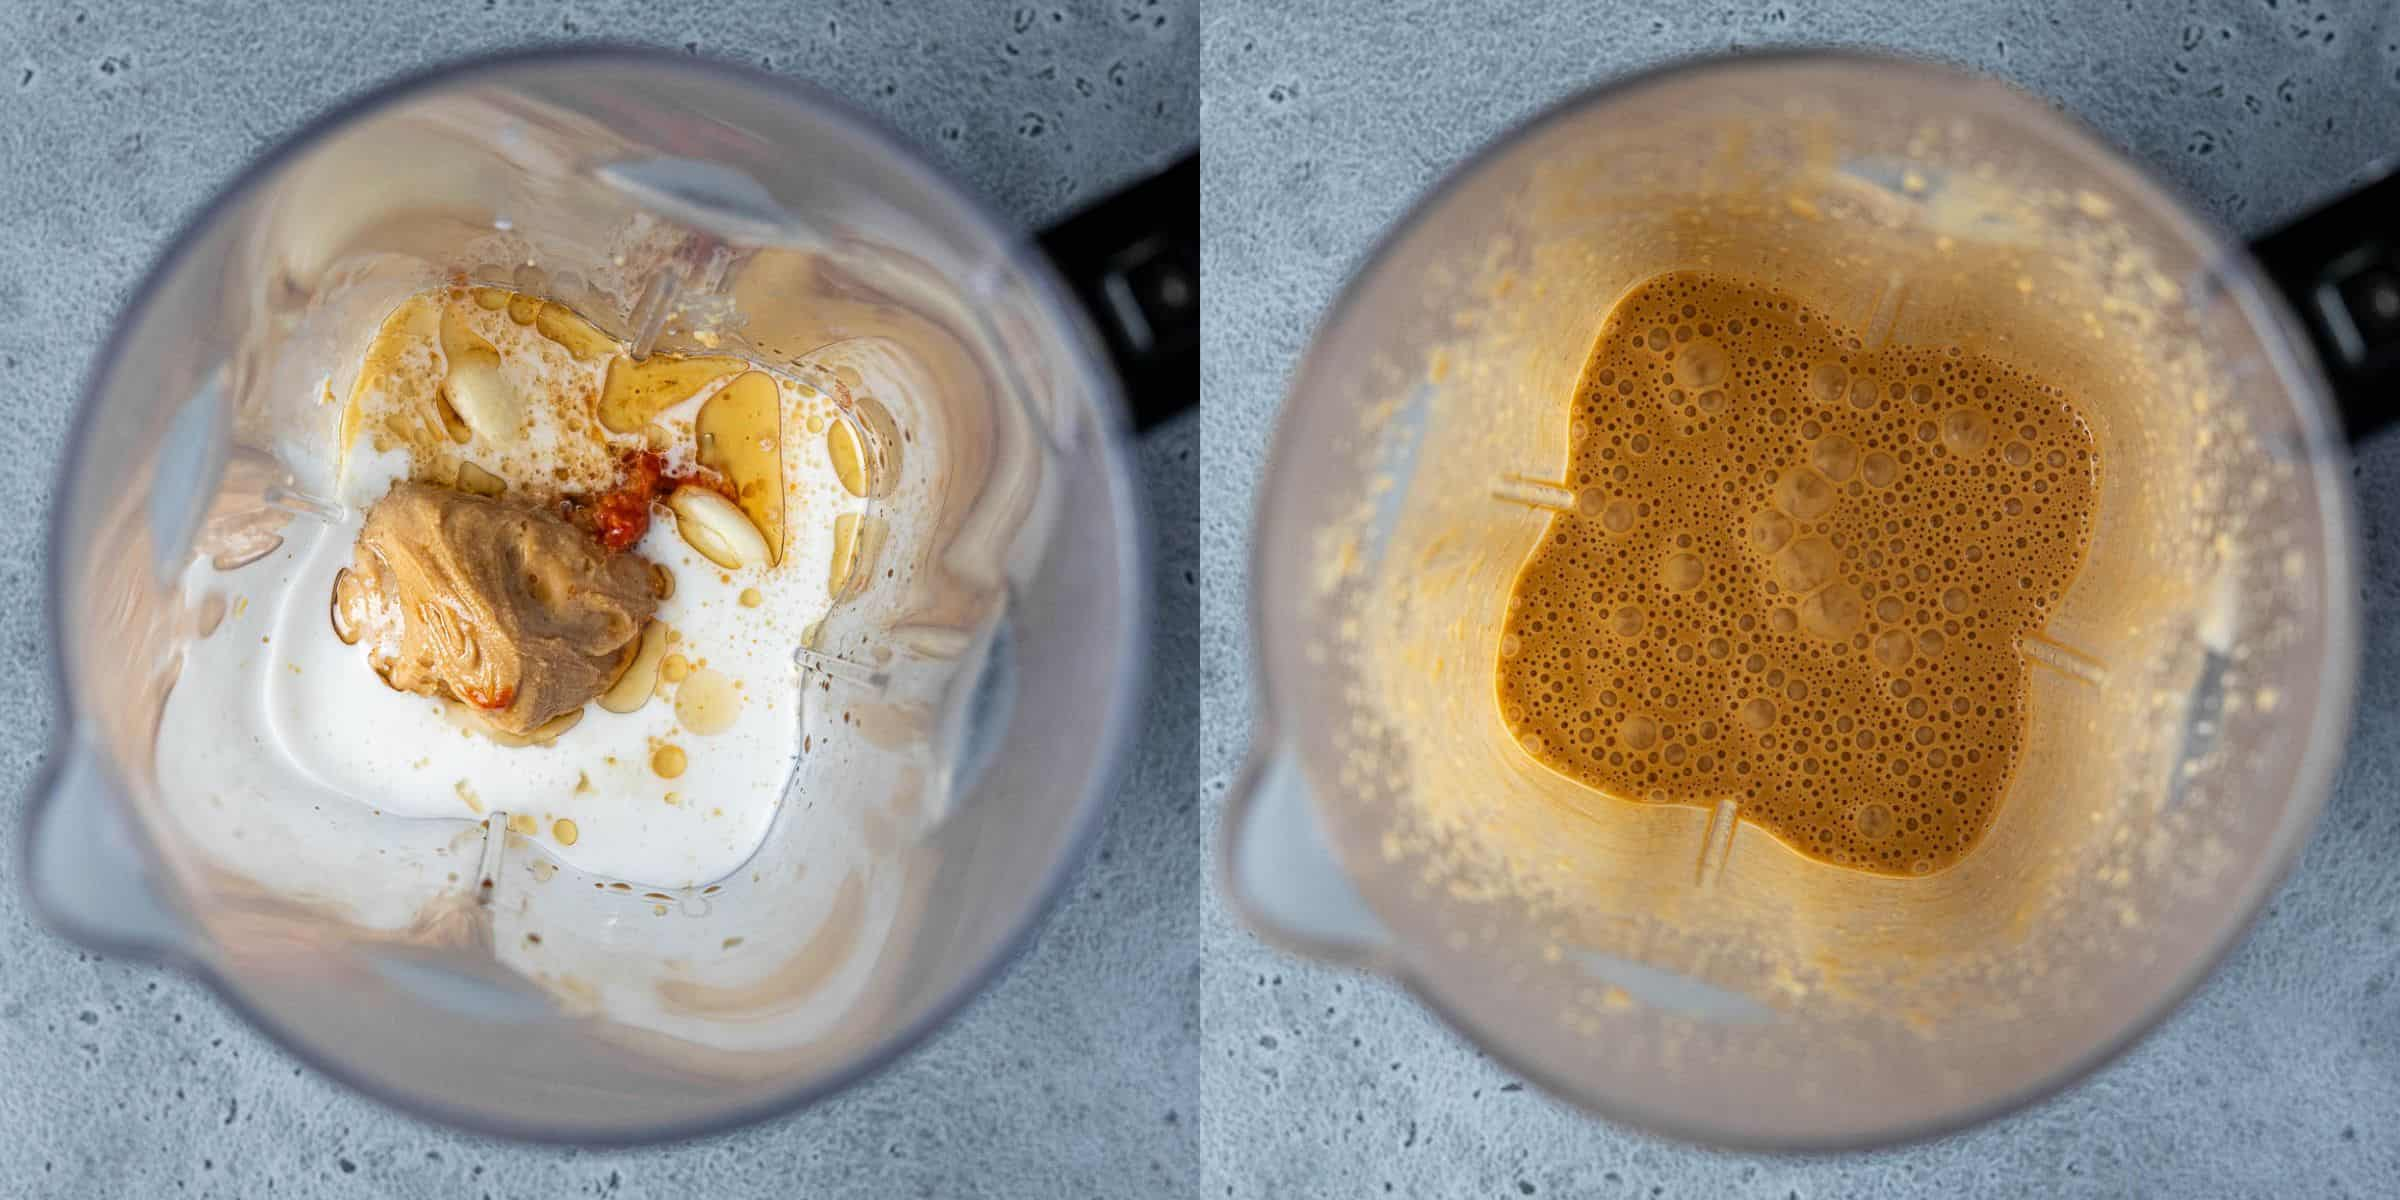 A two image collage of the sauce in a blender before and after blending.